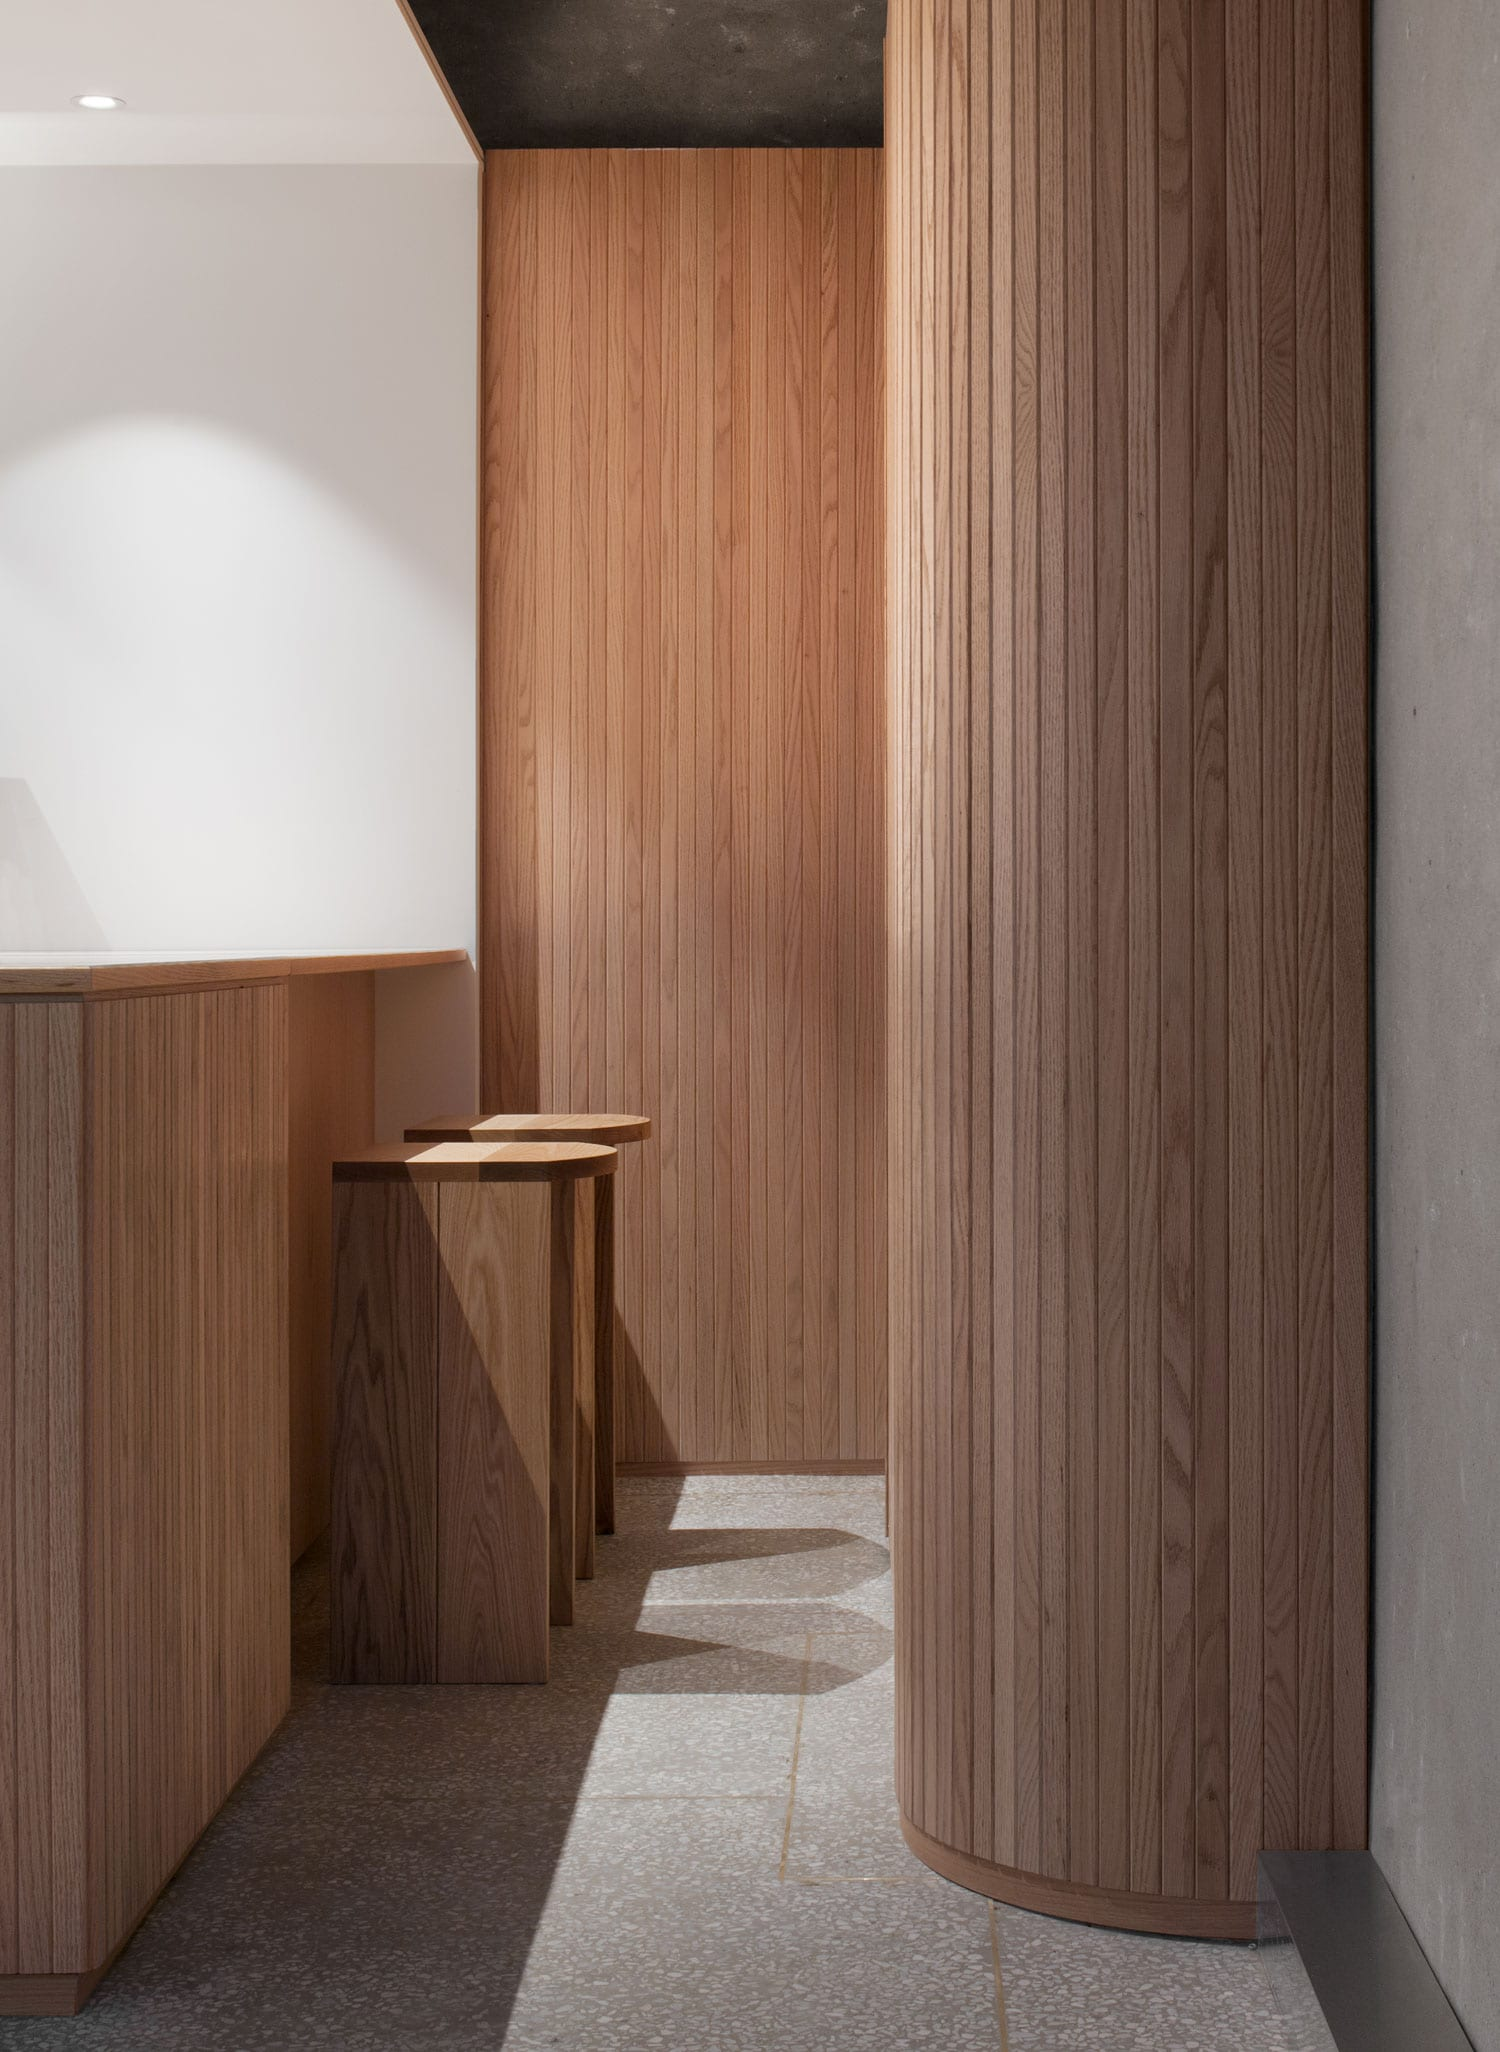 Cafe Oriente by Studio LABOTORY   Yellowtrace